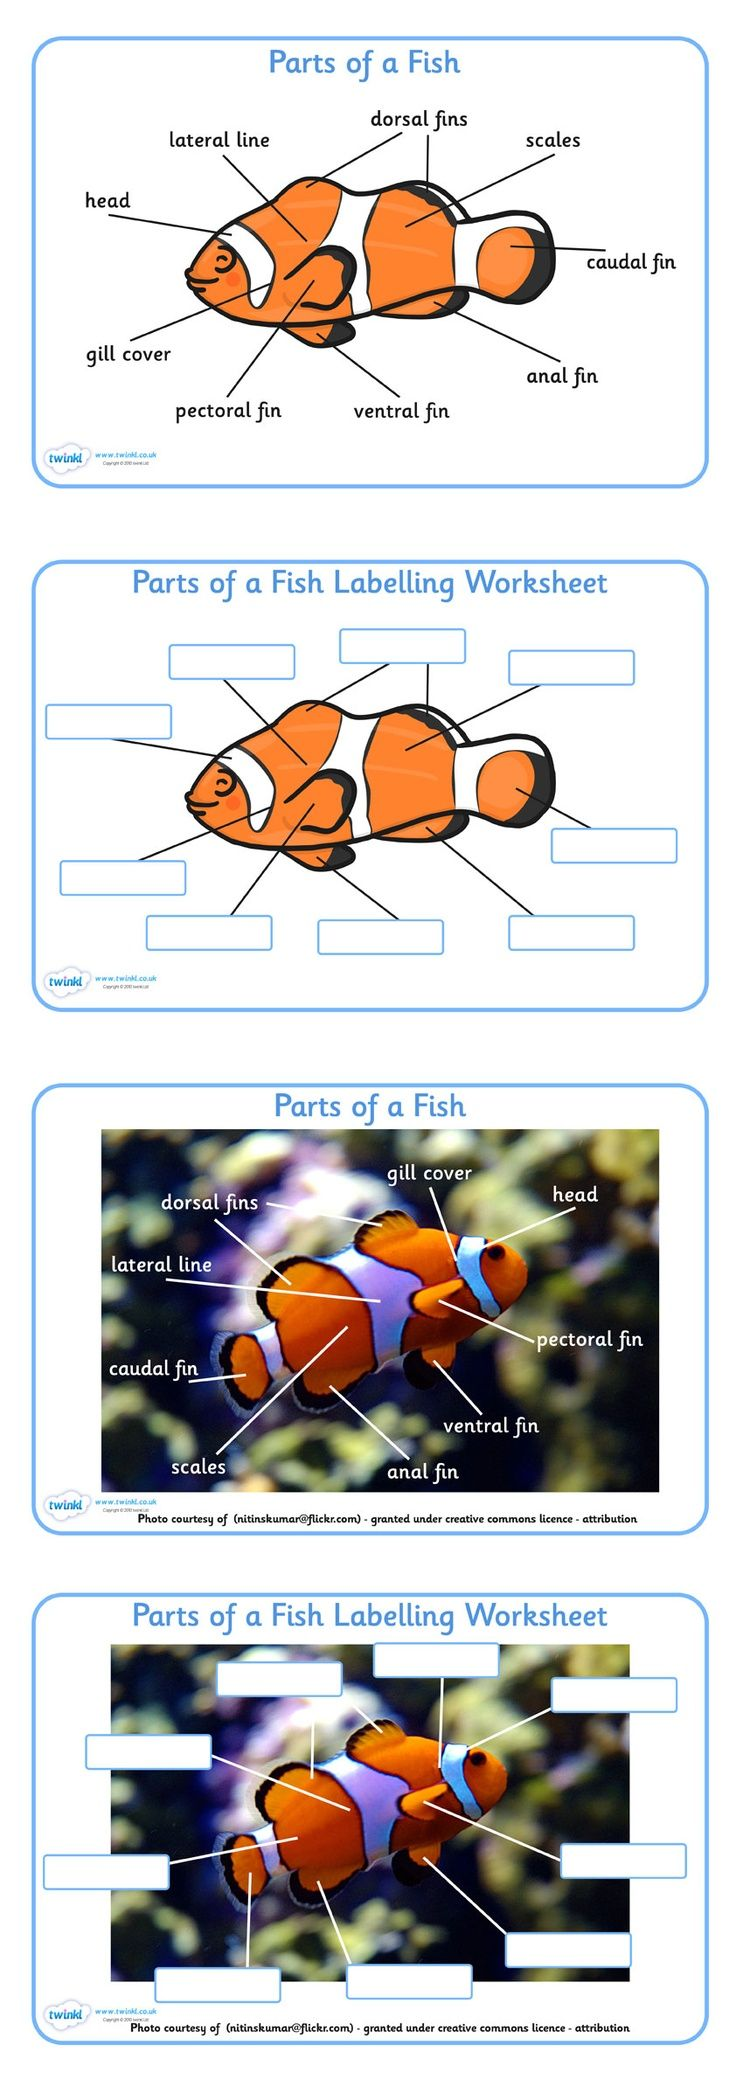 Cartoon fish coloring pages fish pouting fish sleepy cartoon fish - Parts Of A Fish Labelling Sheets Pop Over To Our Site At Www Twinkl